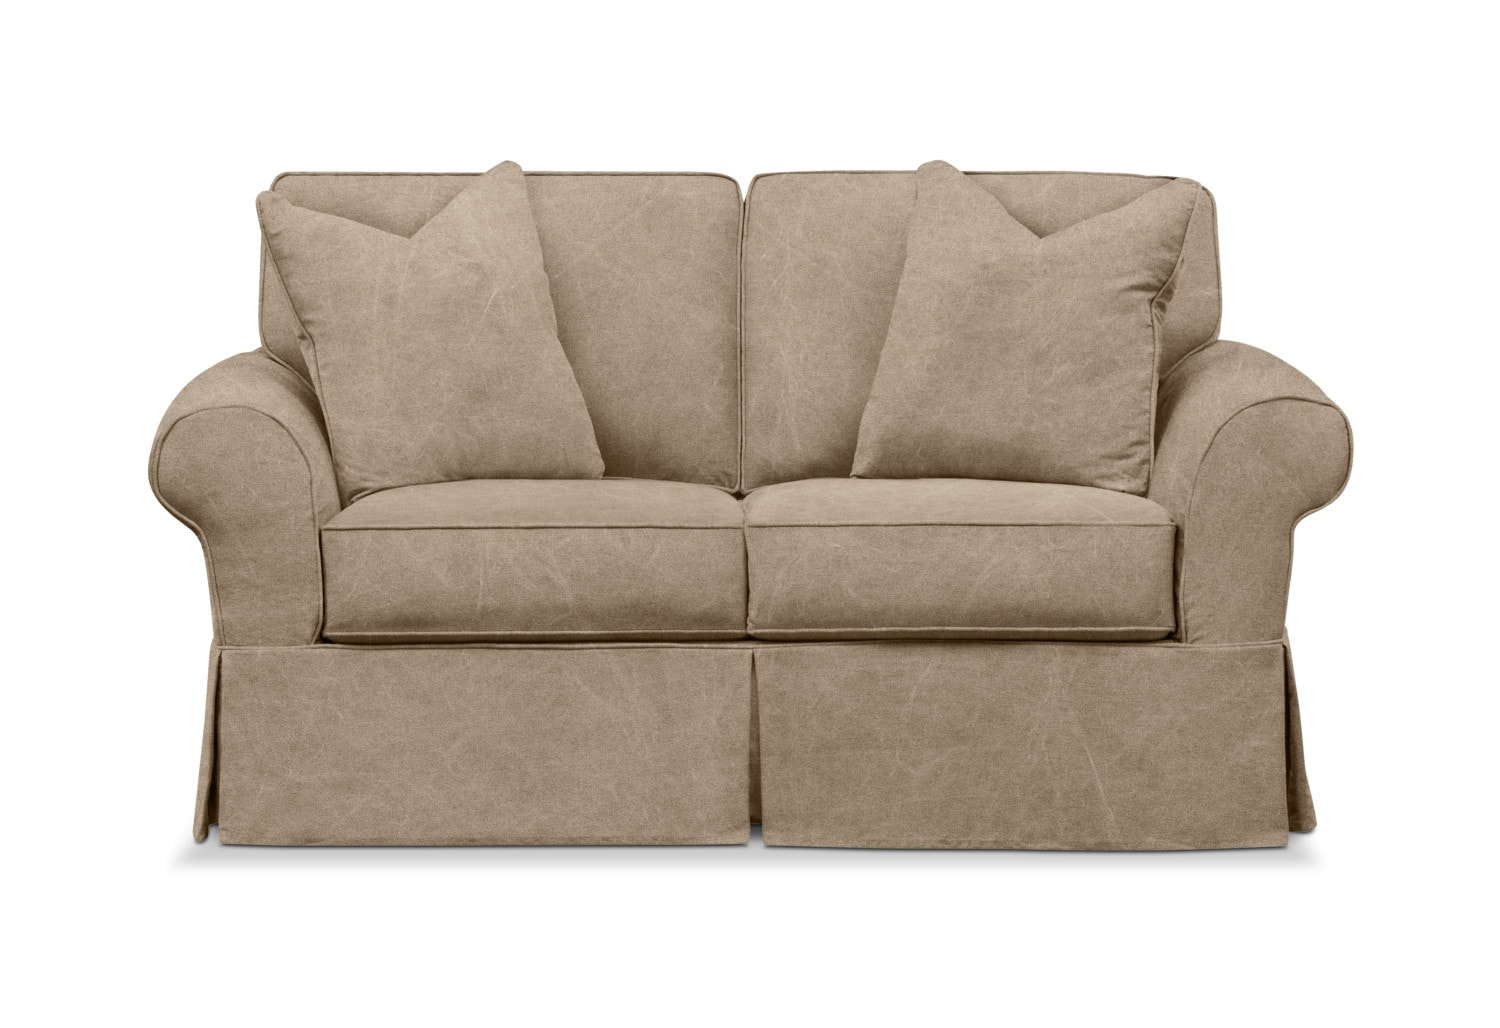 Living Room Furniture - Sawyer Slipcover Loveseat